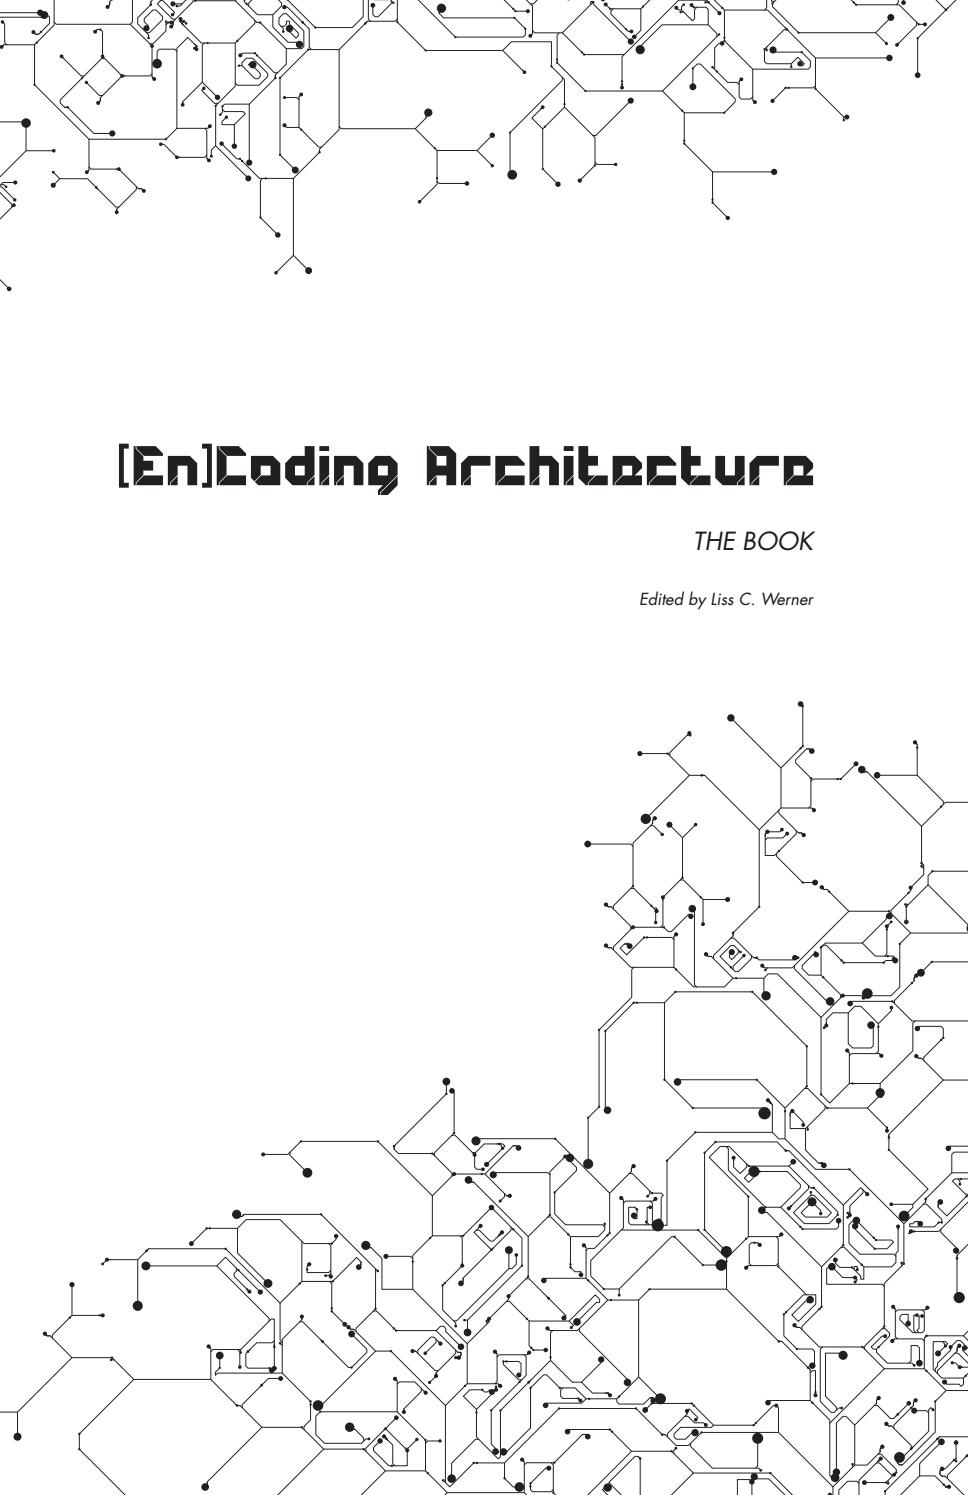 Lcwerner - Encoding Architecture - The Bookliss C. Werner - Issuu - Wiring Diagram For Nest 3Dd Gen Variable Furnace